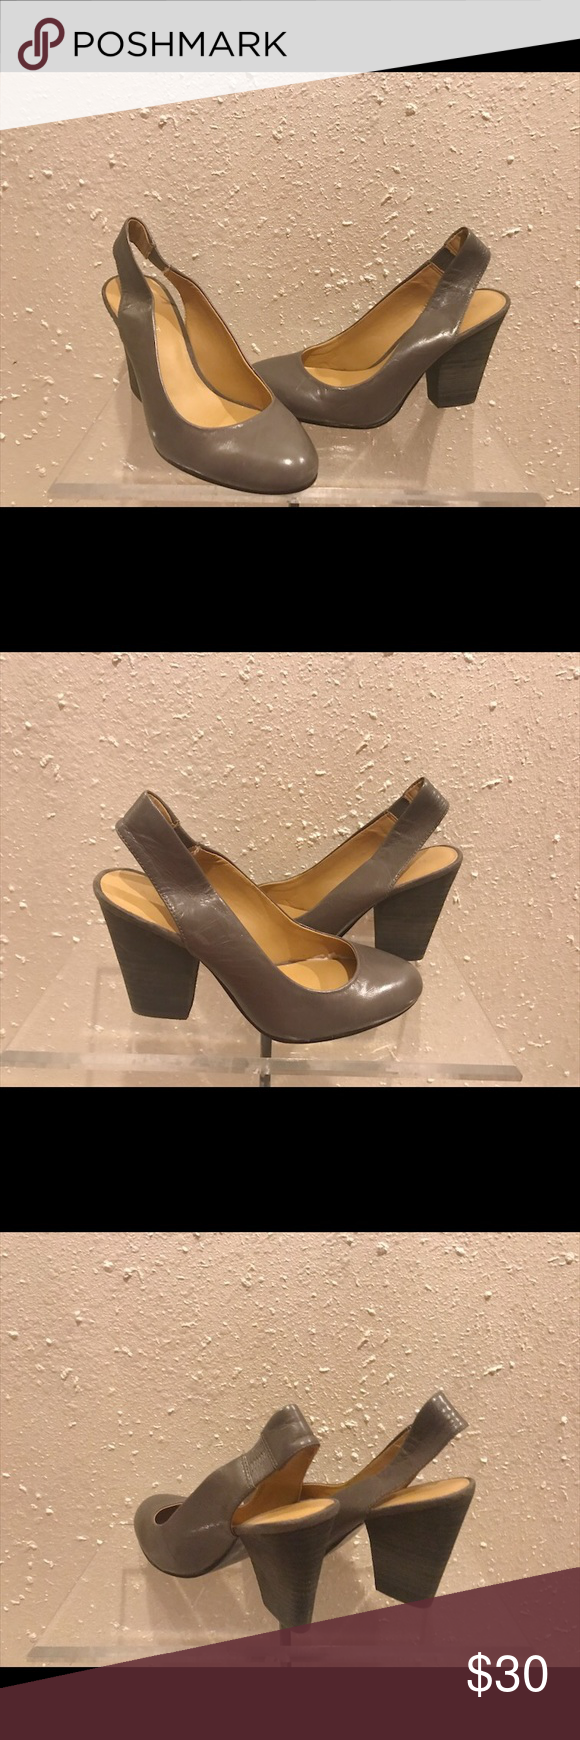 """All shoes are pre-owned and pre-loved 🔸Heel Type: Chunky Heel """"Slingback"""" 🔸Heel Height: 3 1/2 Nine West Shoes Heels"""